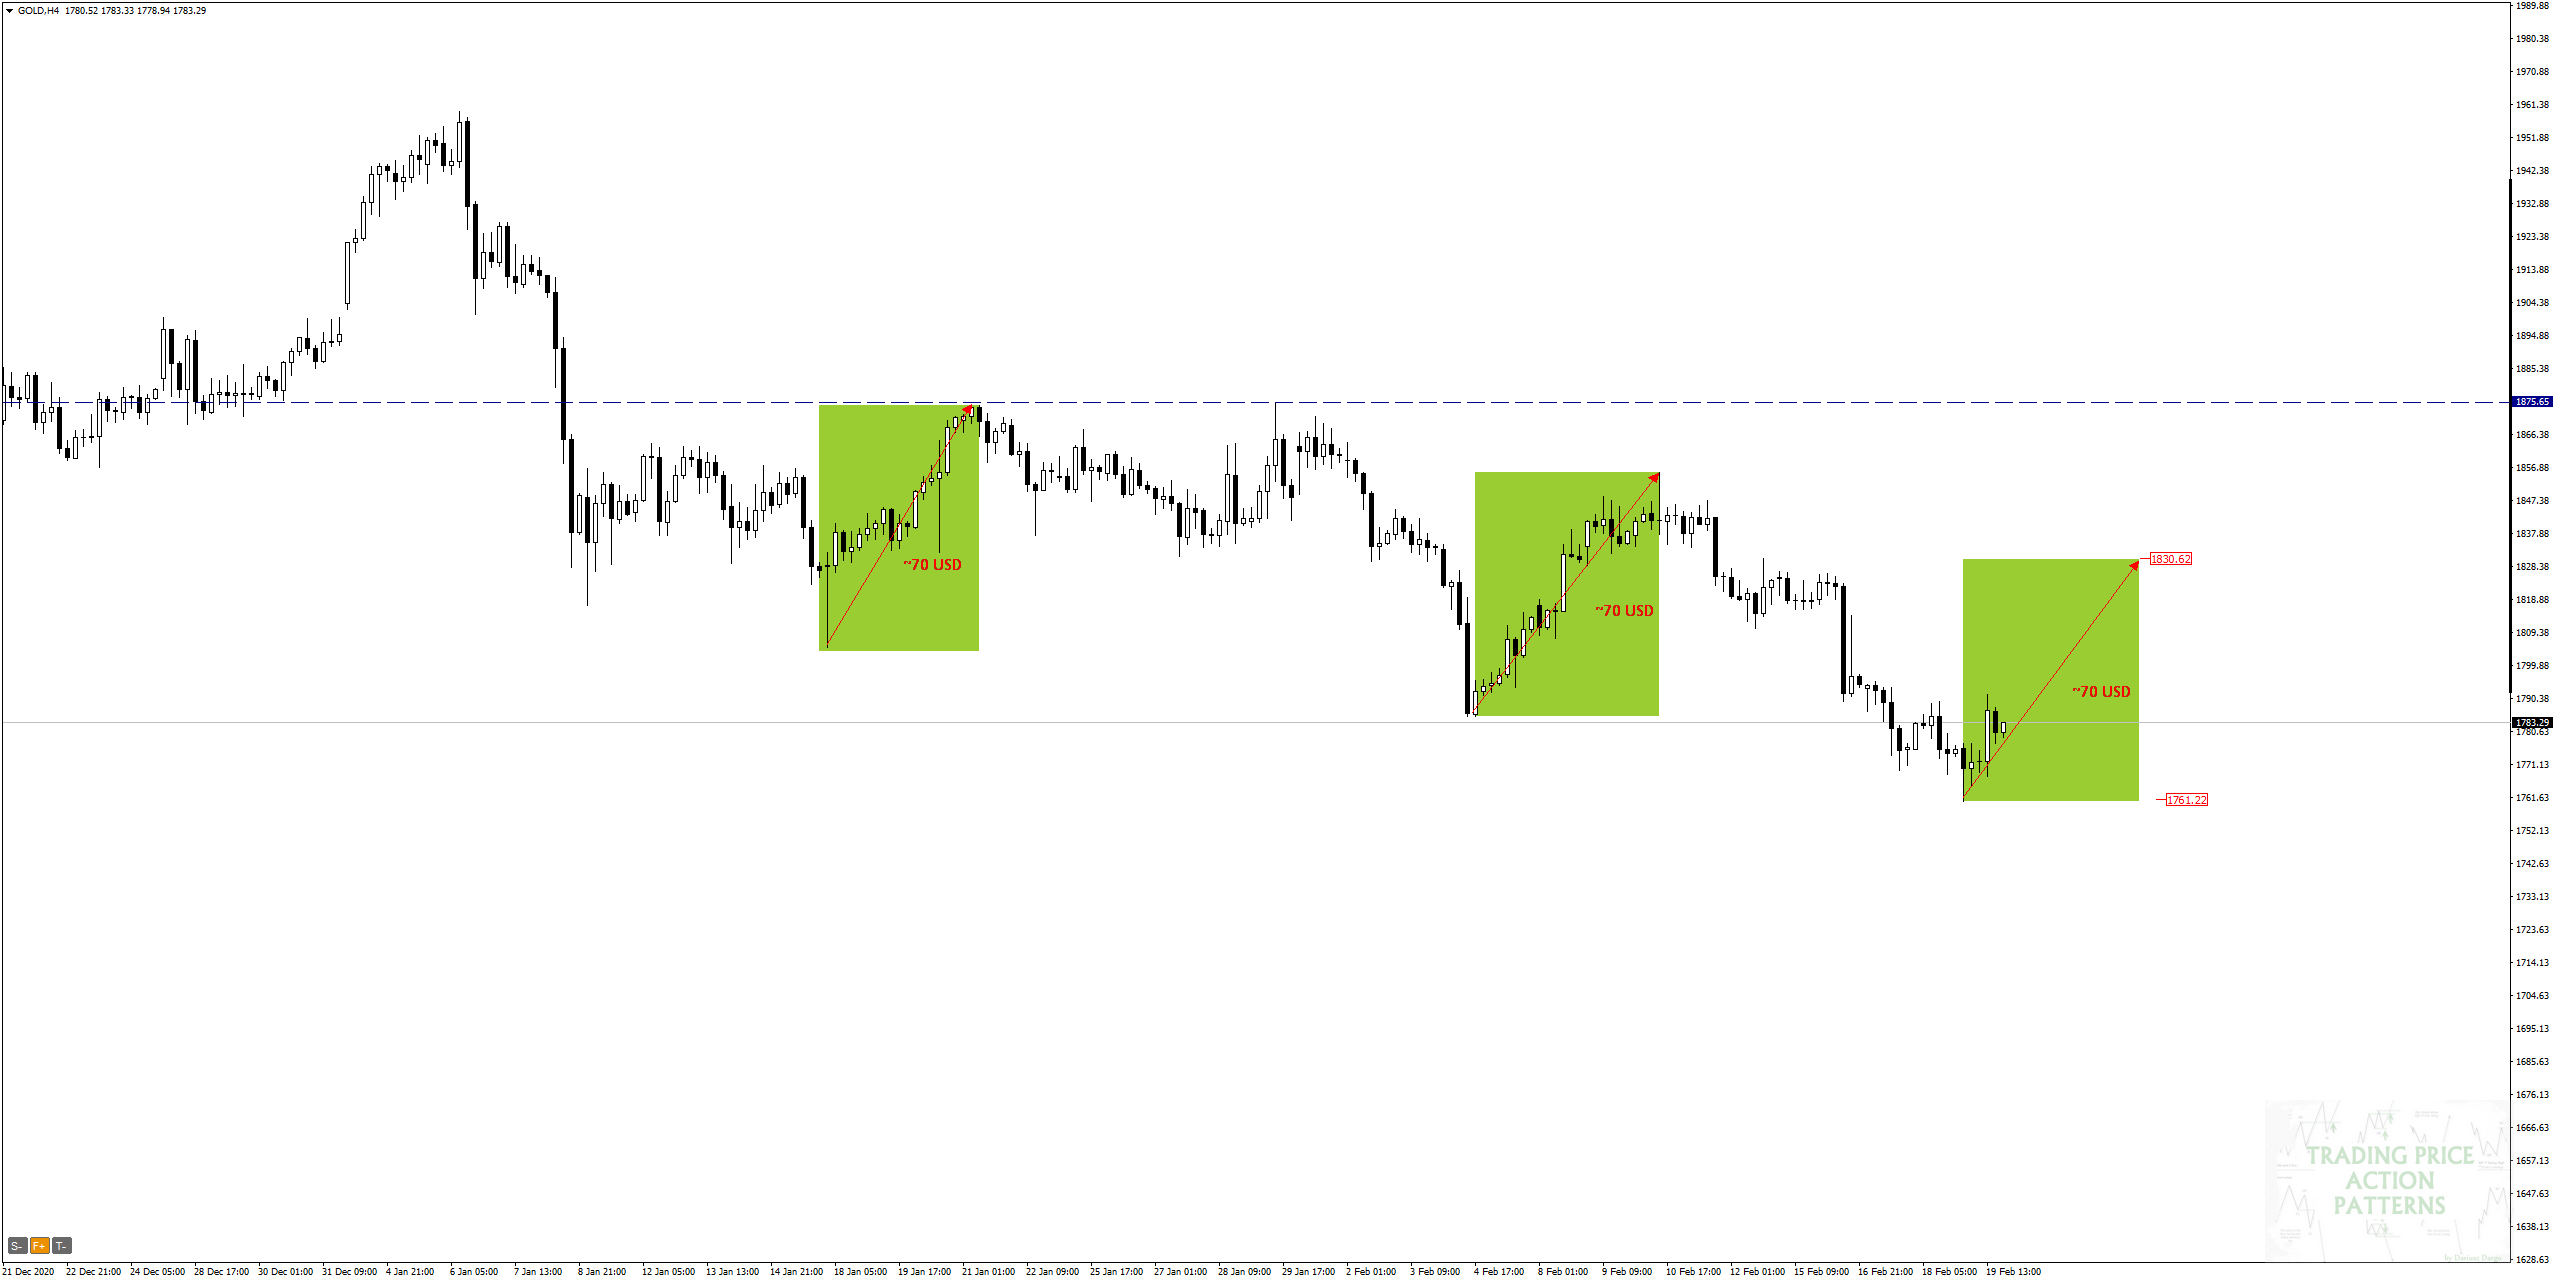 GOLD H4 - Overbalance strategy and likely correction range